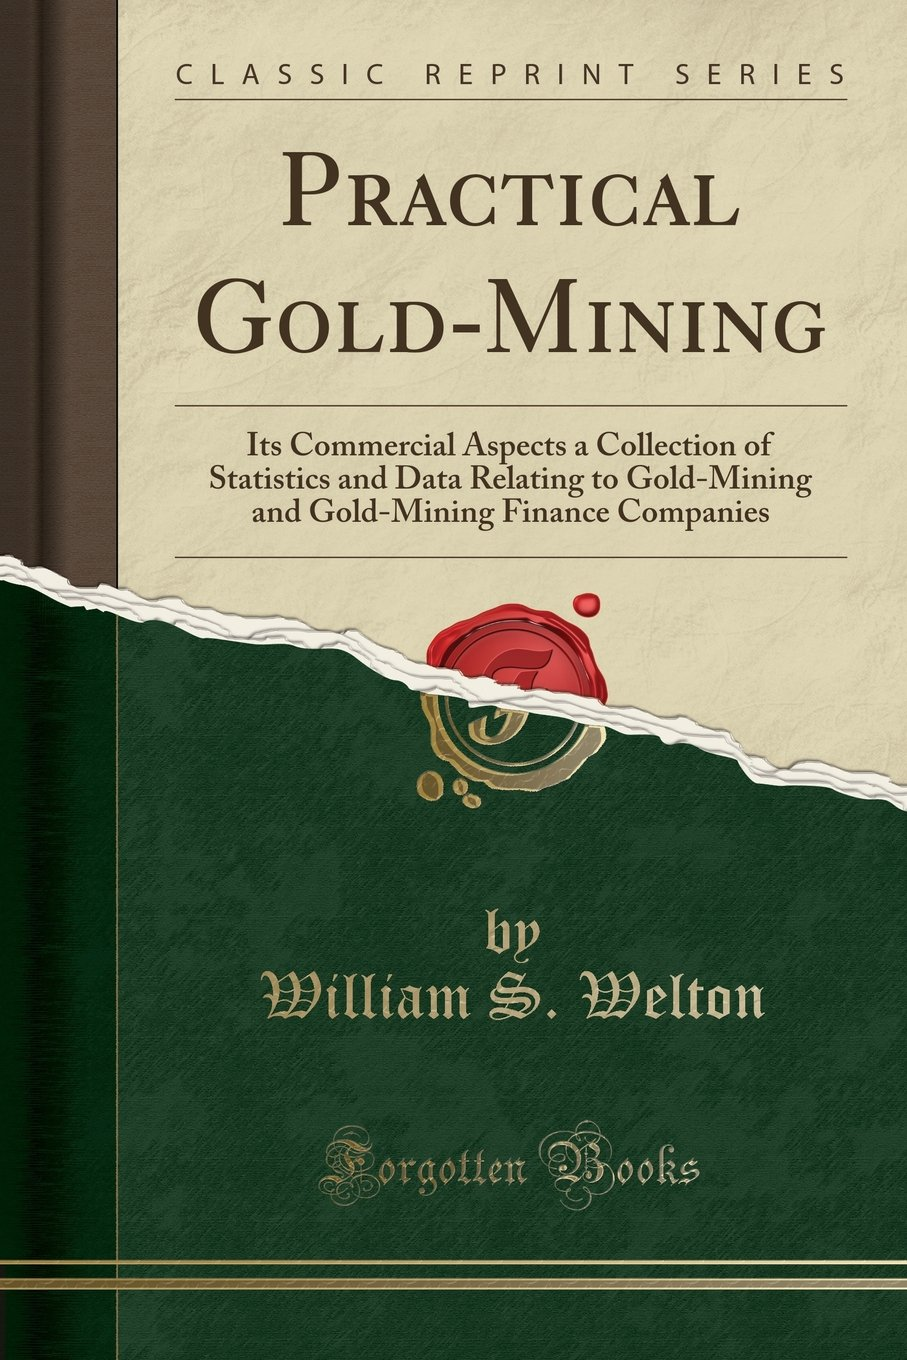 Practical Gold-Mining: Its Commercial Aspects a Collection of Statistics and Data Relating to Gold-Mining and Gold-Mining Finance Companies (Classic Reprint) PDF